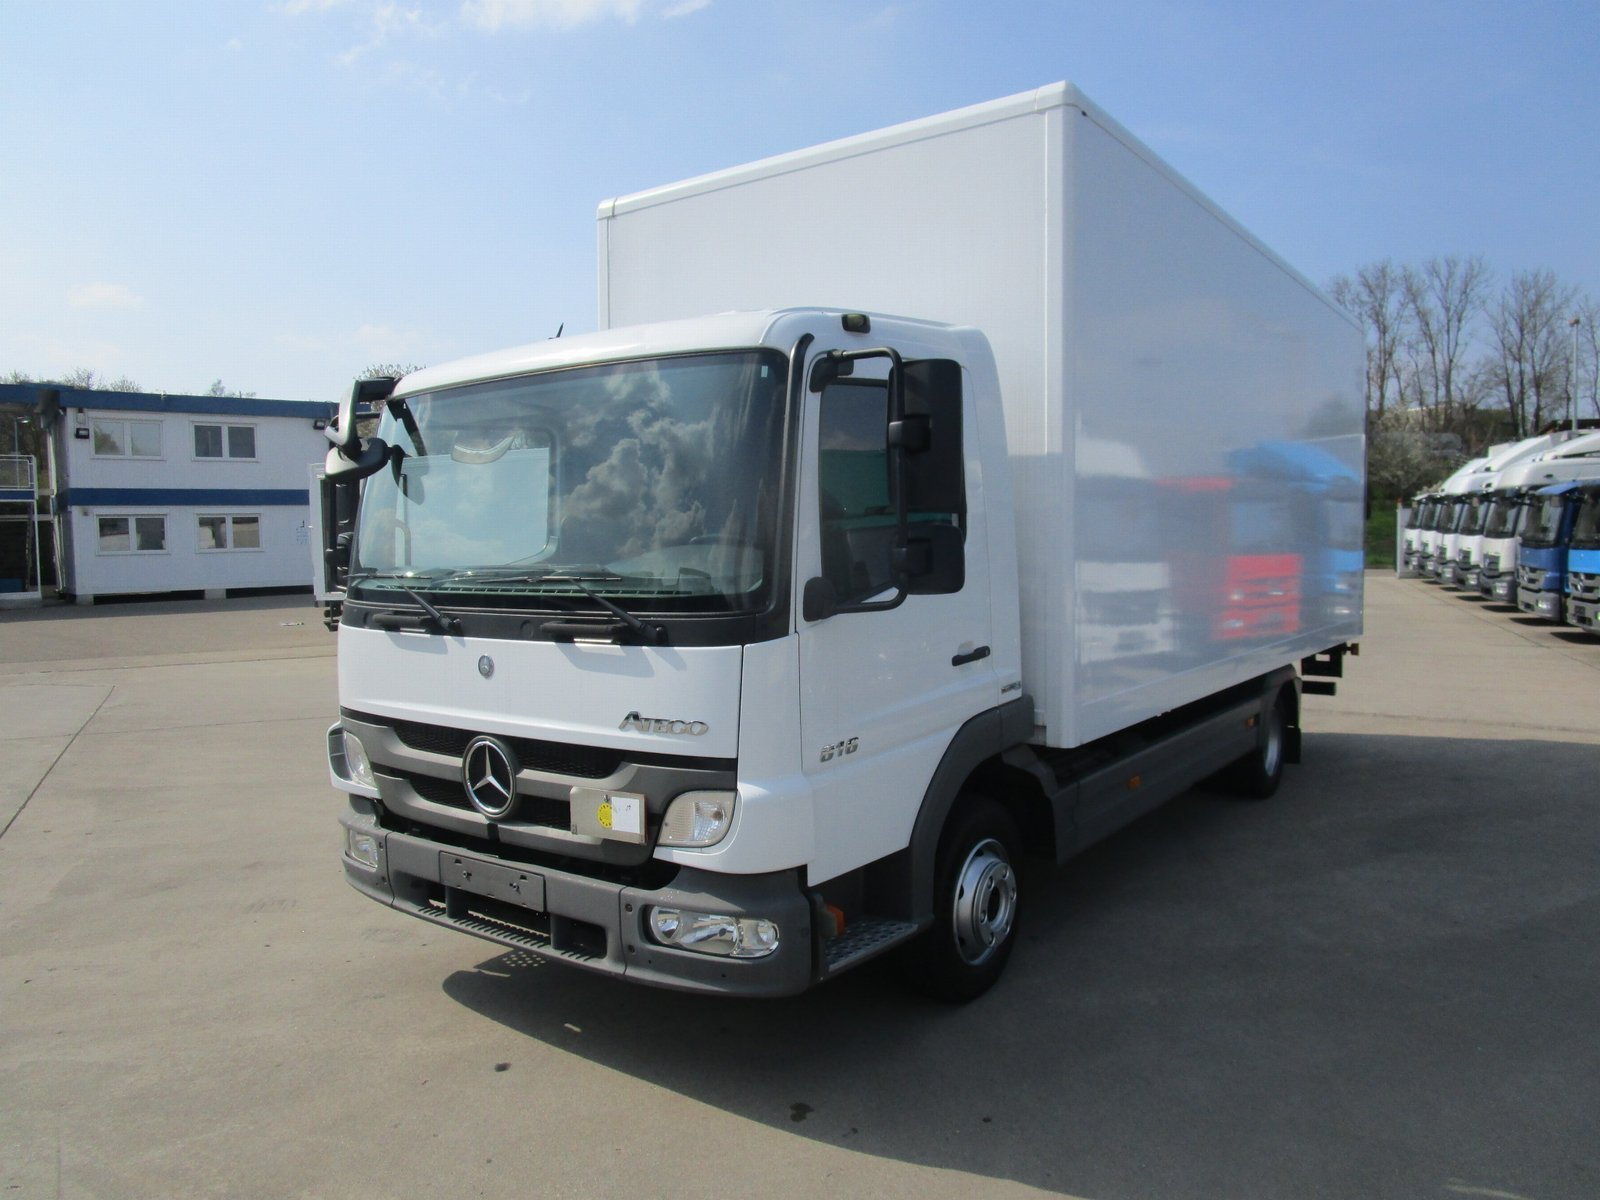 ATEGO III 816 Koffer 6,10 m LBW 1 to. 3-Sitzer